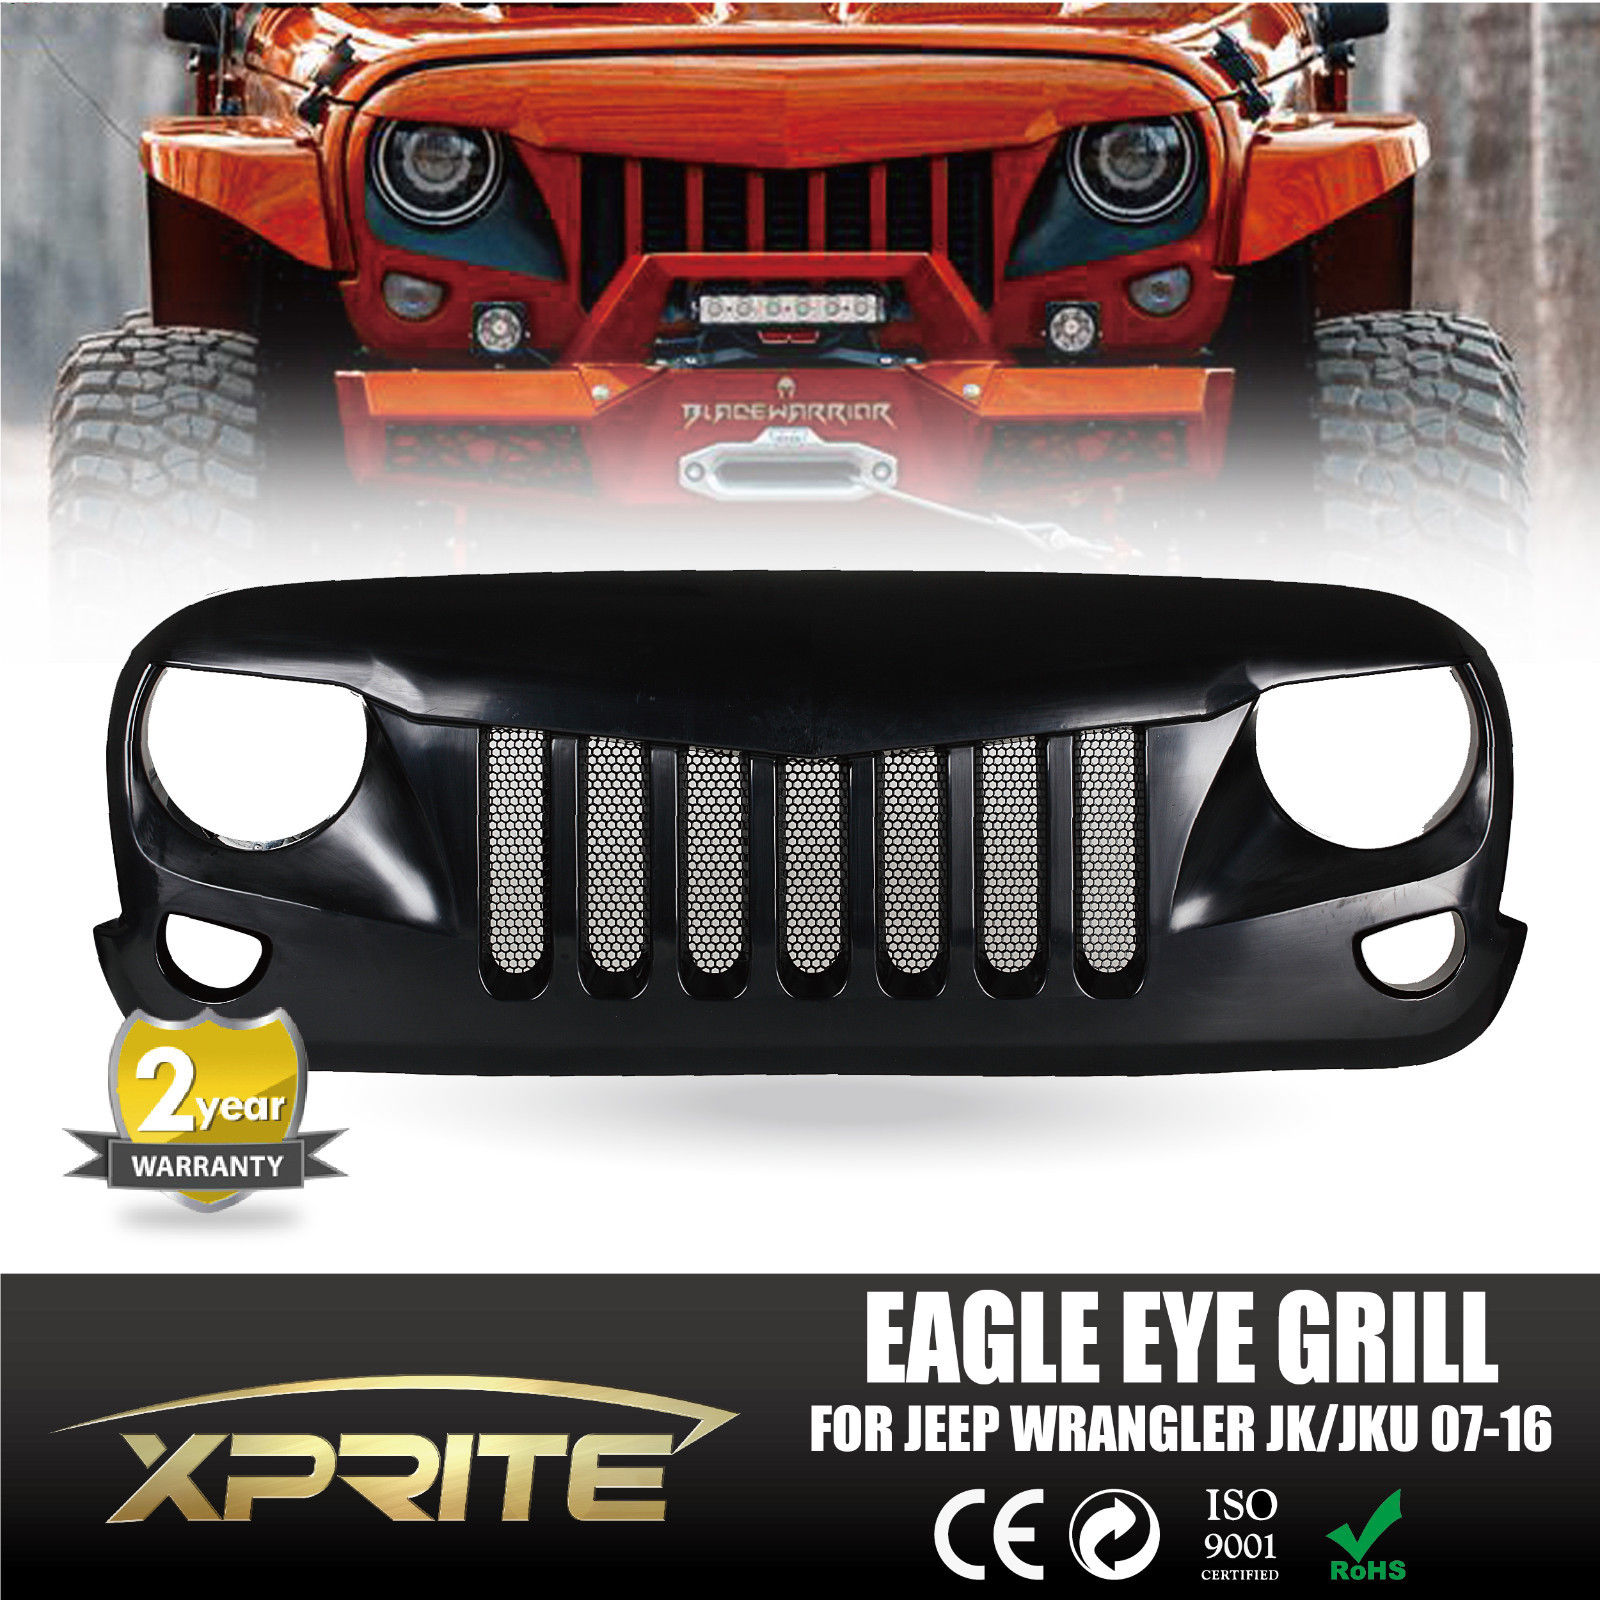 xprite front black eagle eye grill grille with mesh for 2007-2017